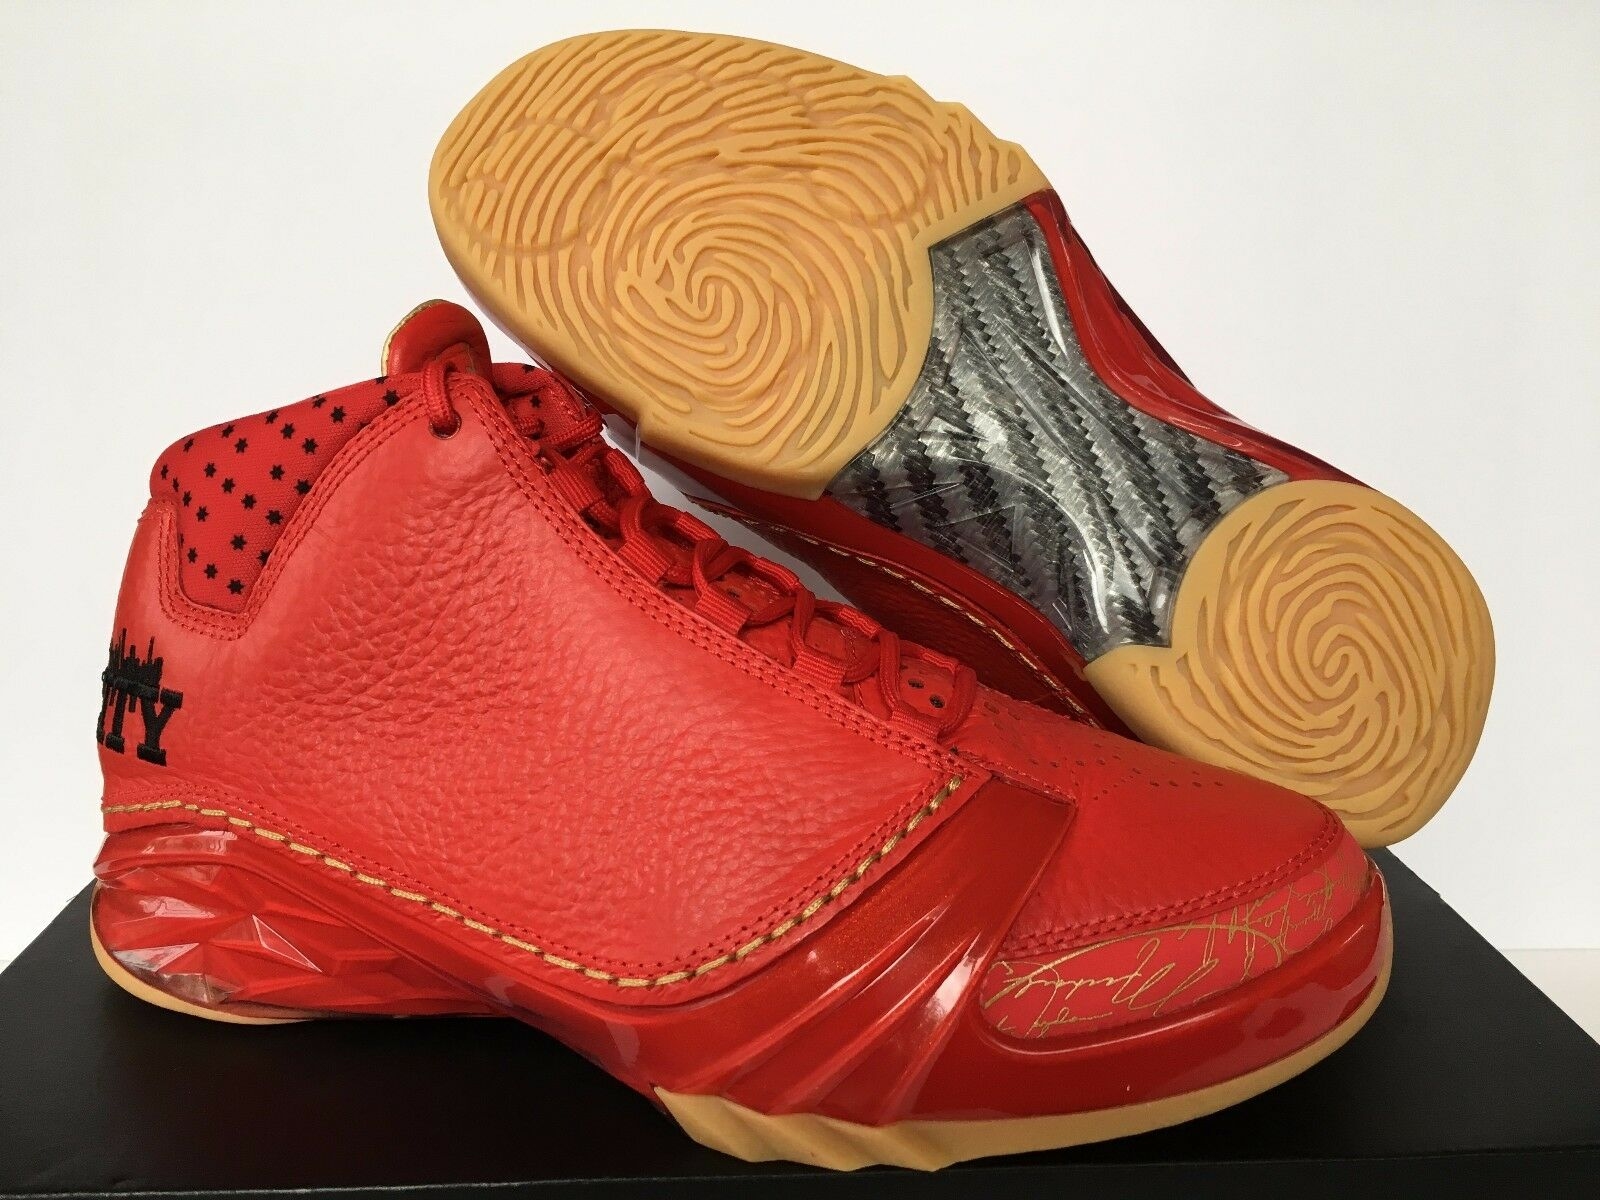 MEN'S NIKE AIR JORDAN XX3 CHICAGO SHOES UNIVERSITY RED 811645-650 SIZE 9.5